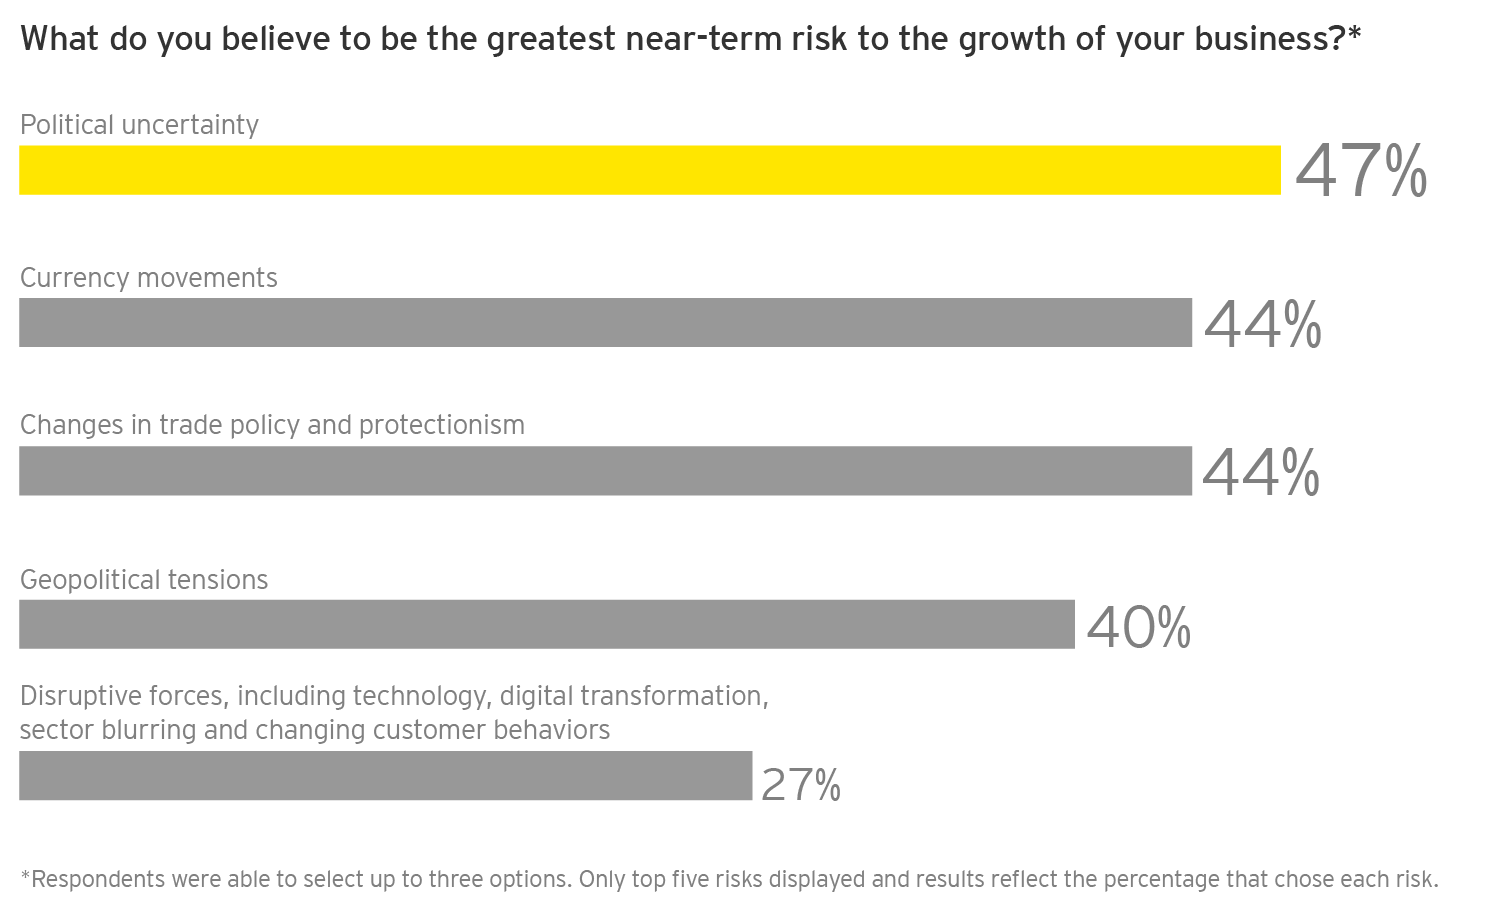 EY - Q: What do you believe to be the greatest near-term risk to the growth of your business?